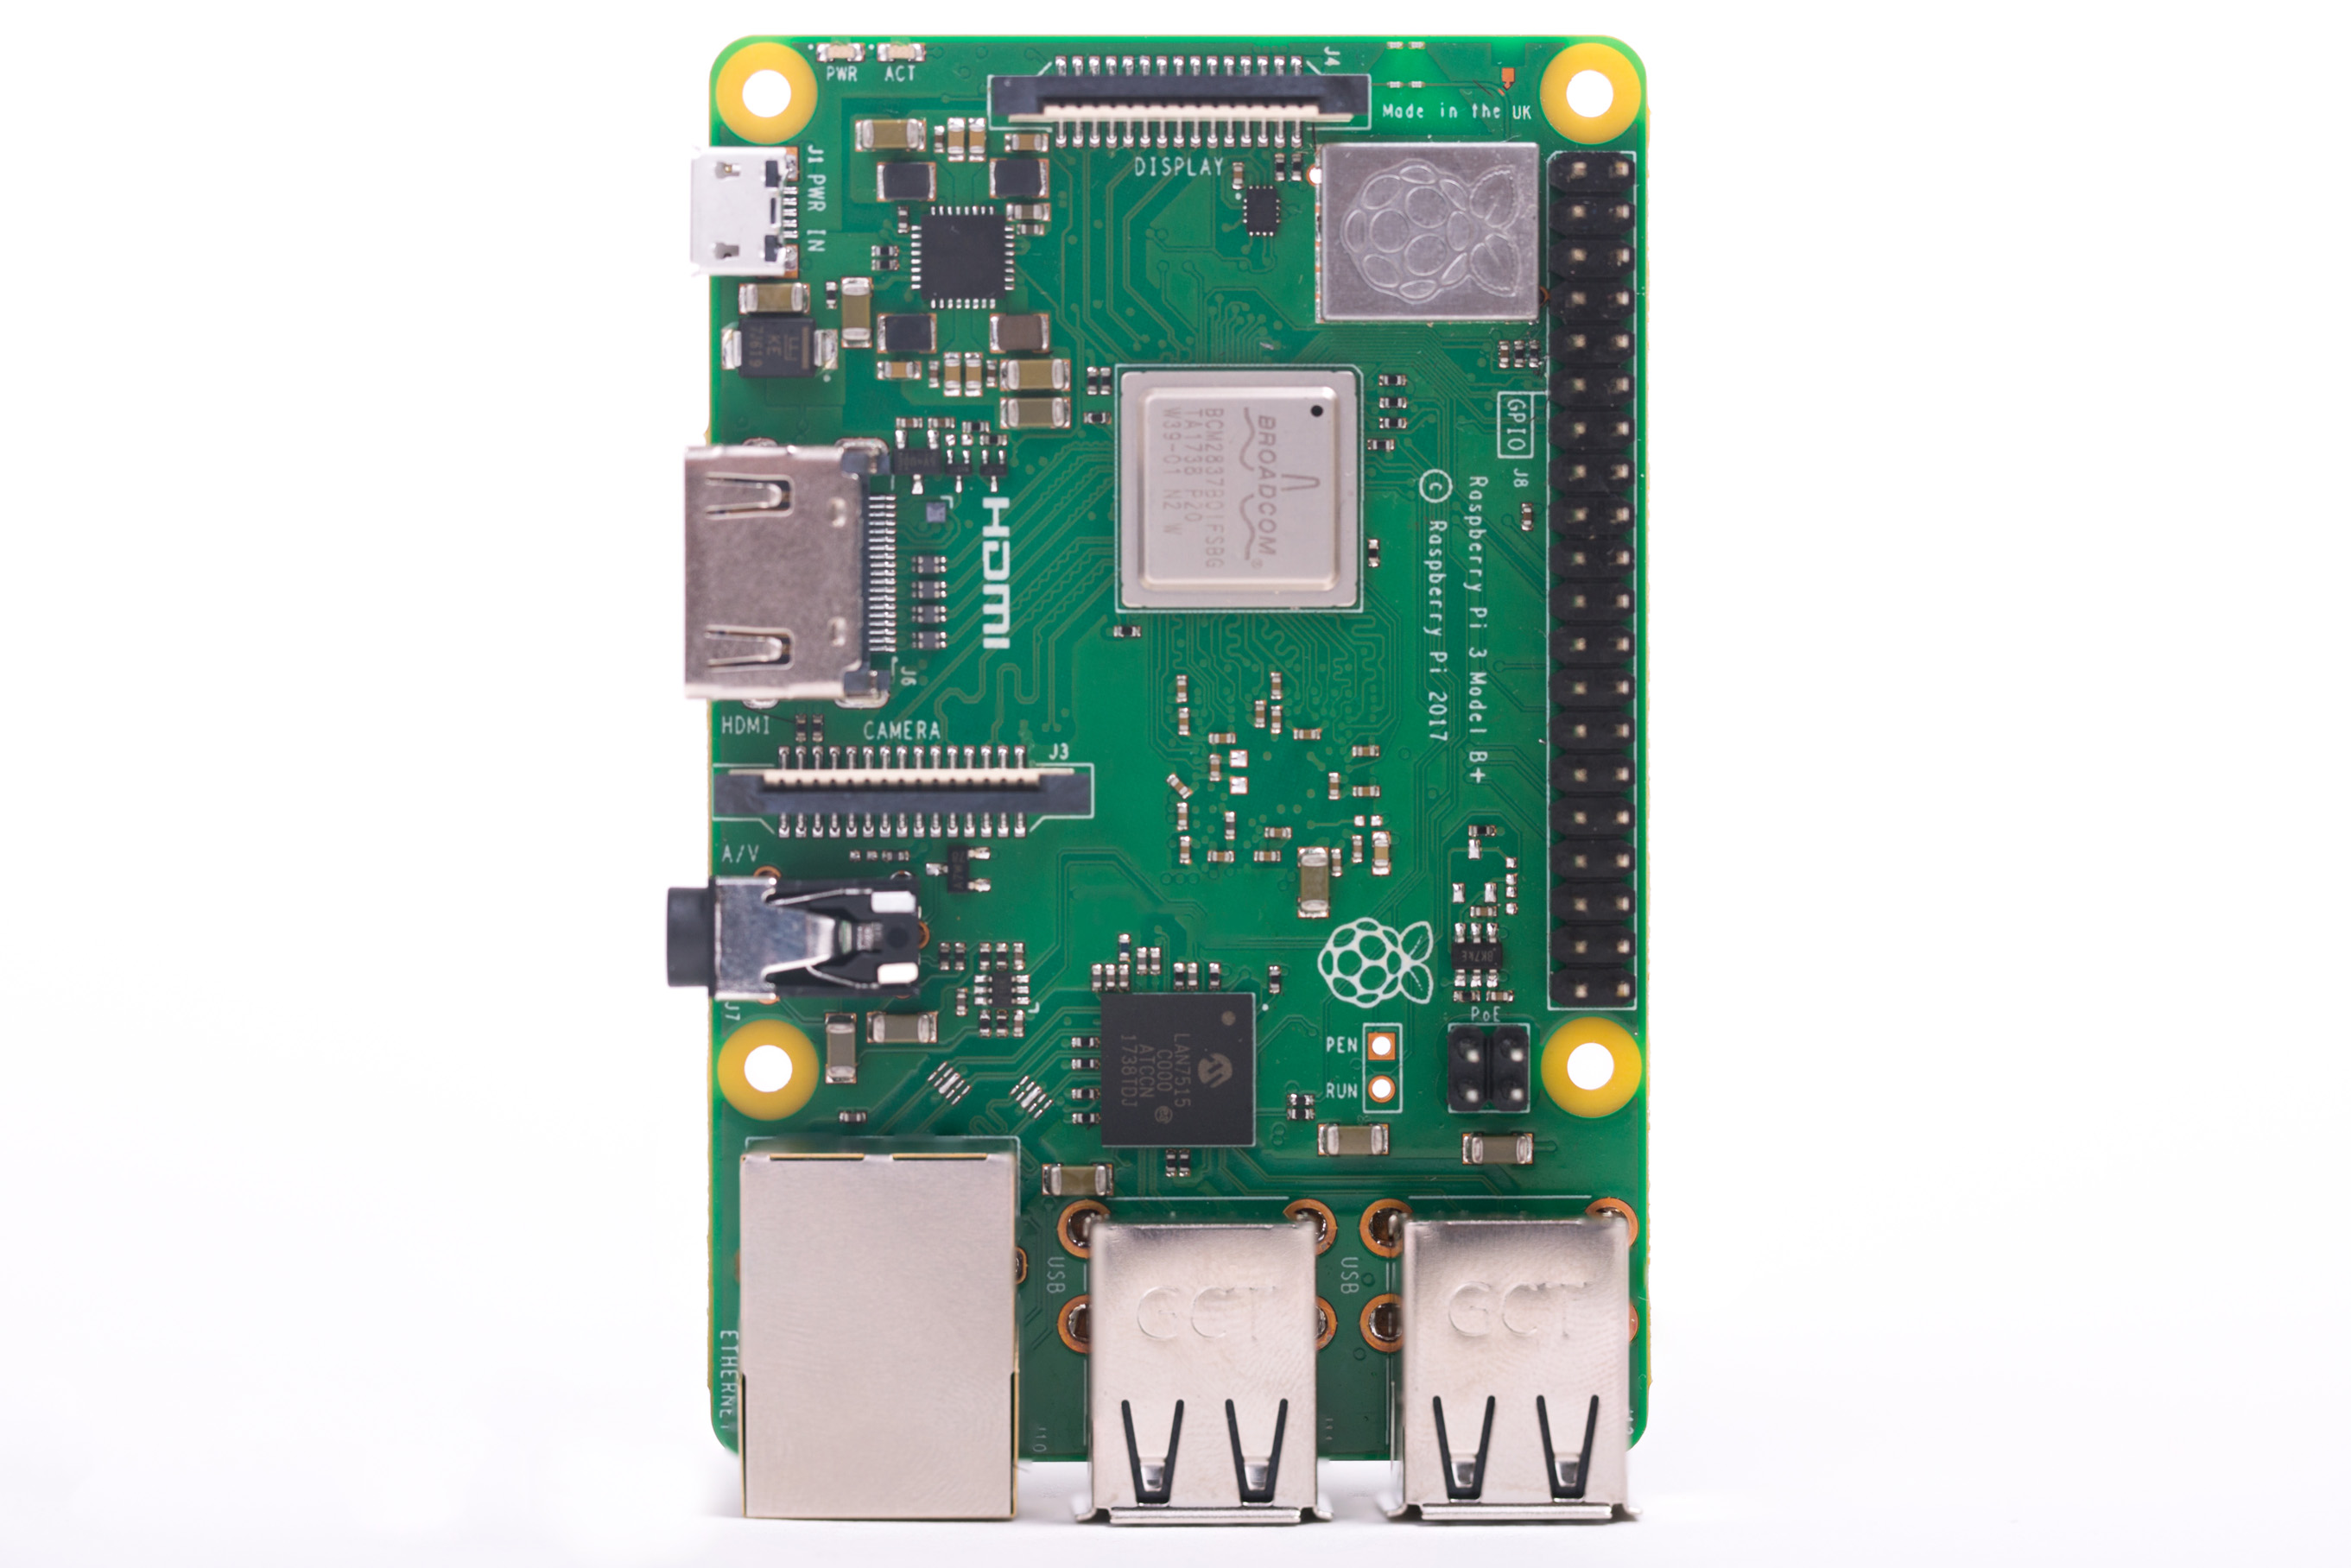 Raspberry Pi 3B+ Launched with Faster CPU and Networking